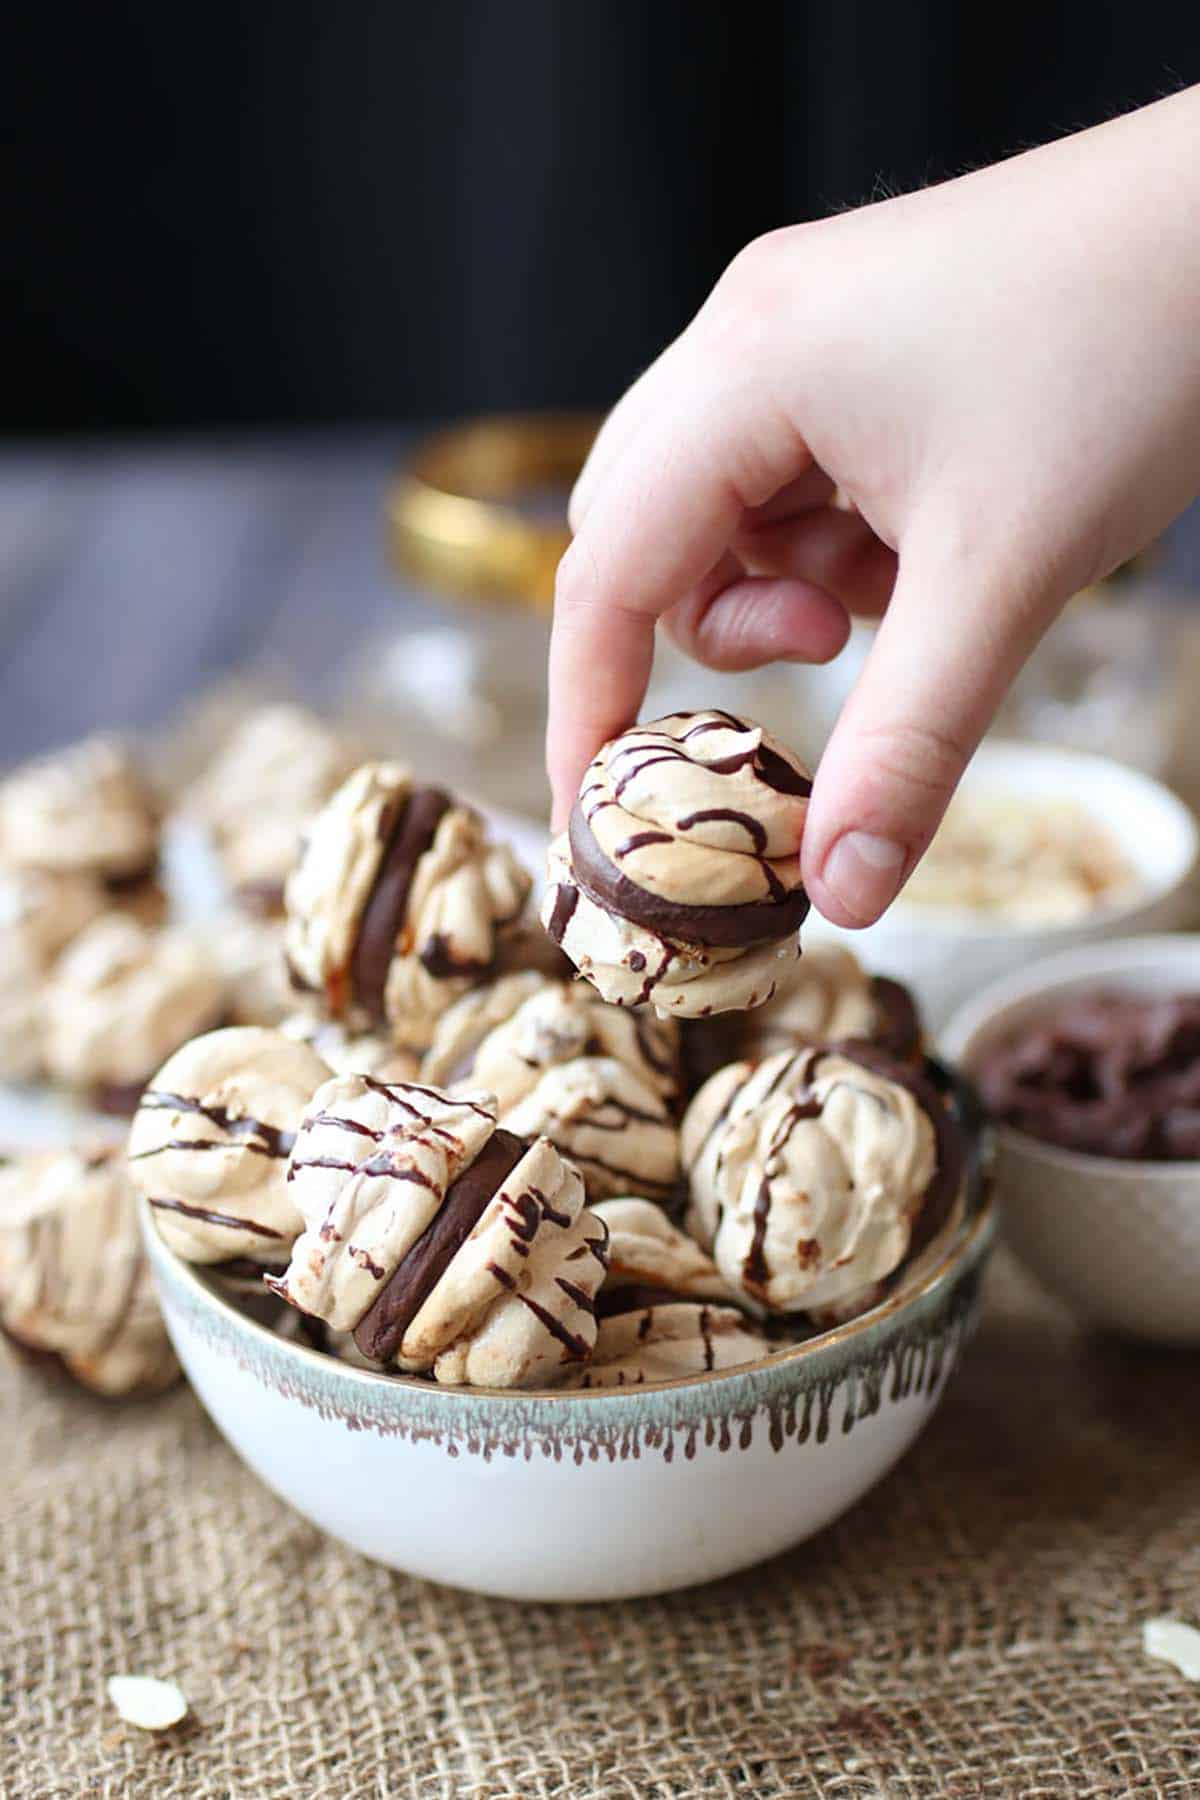 A hand picking up a chocolate meringue cookie from a bowl.